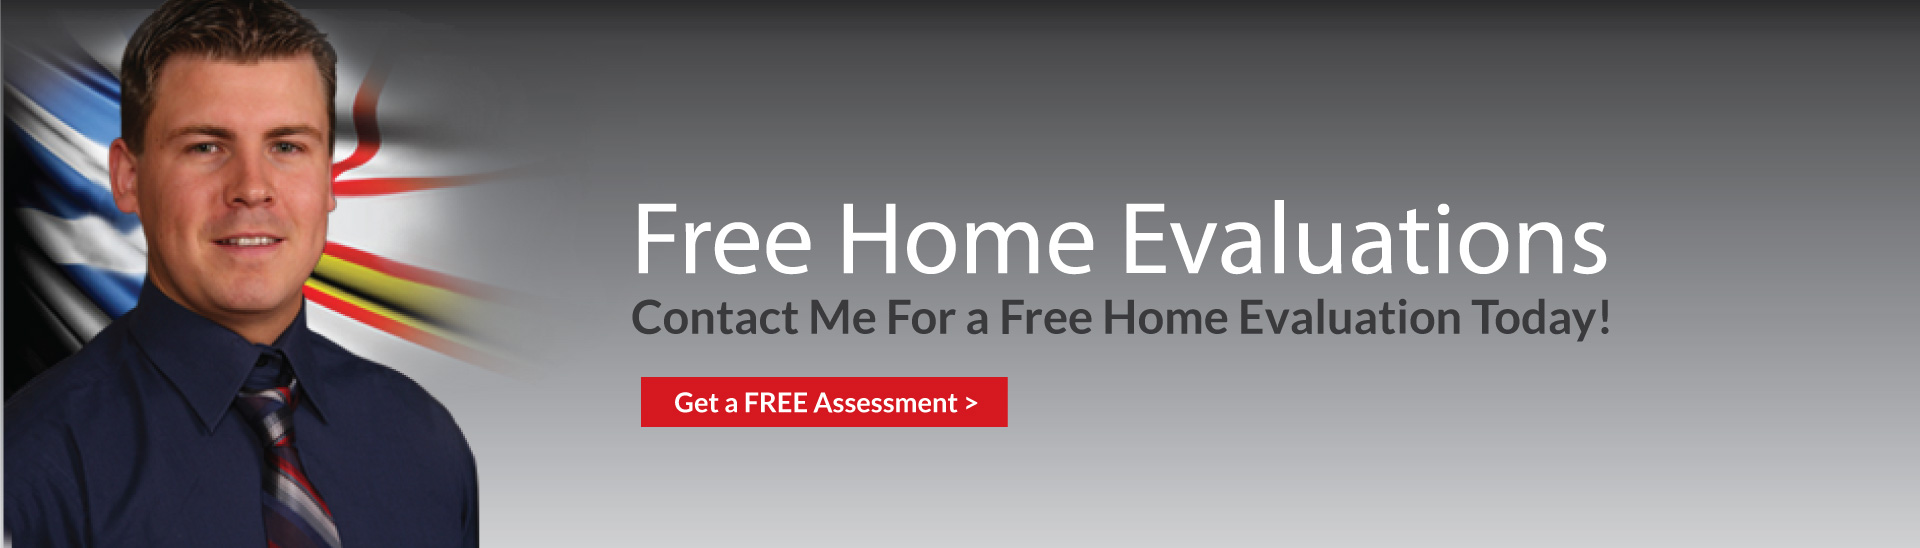 Grande Prairie Realtor Sheldon Swain - Free Home Evaluation